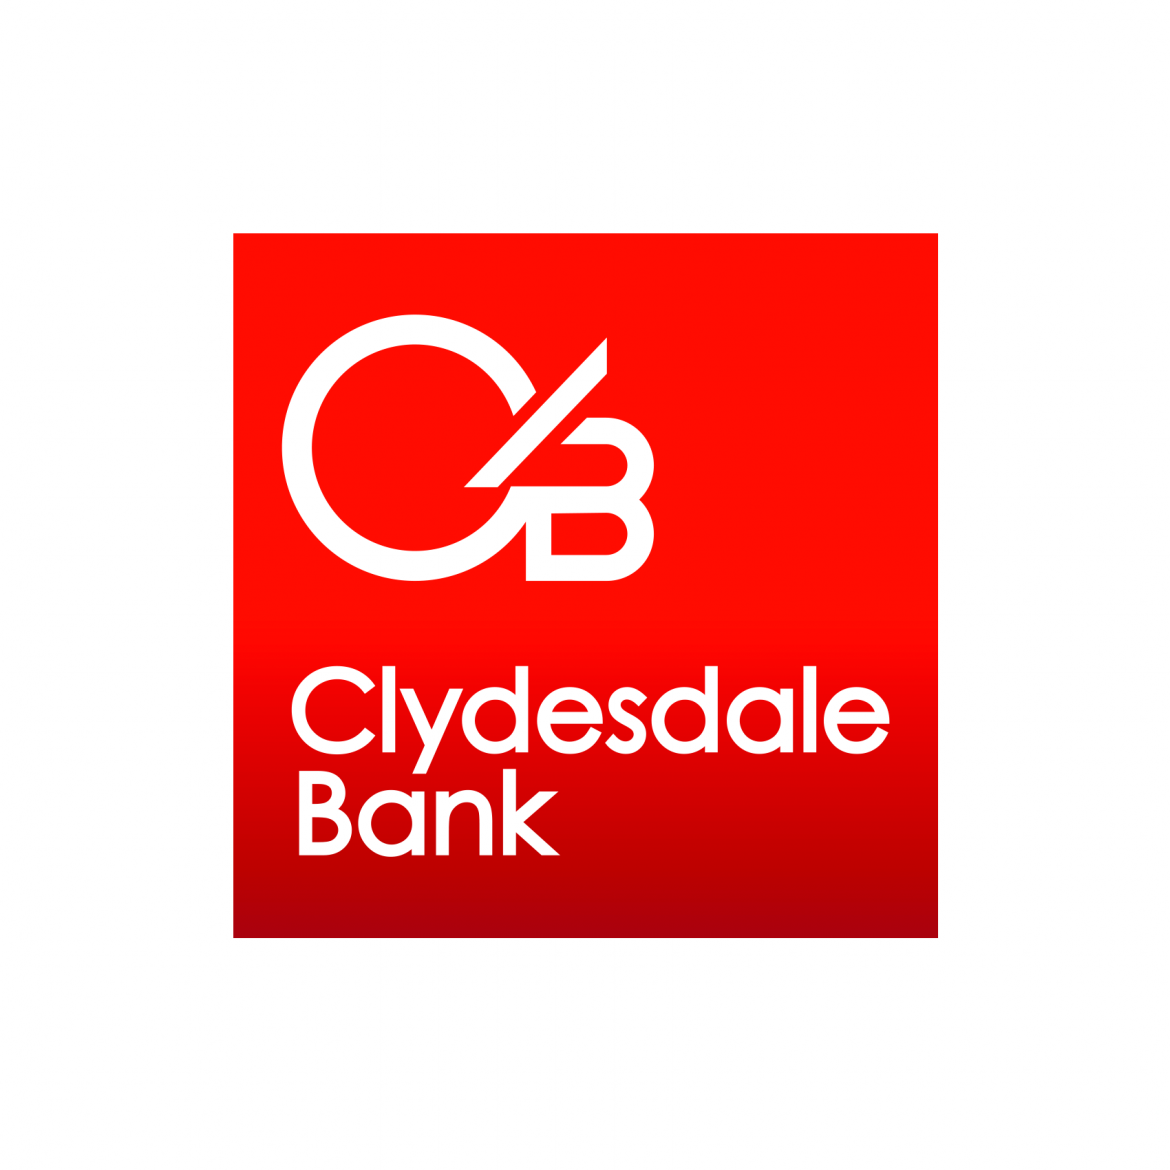 Clydesdale-Bank-Logo-1170x1170